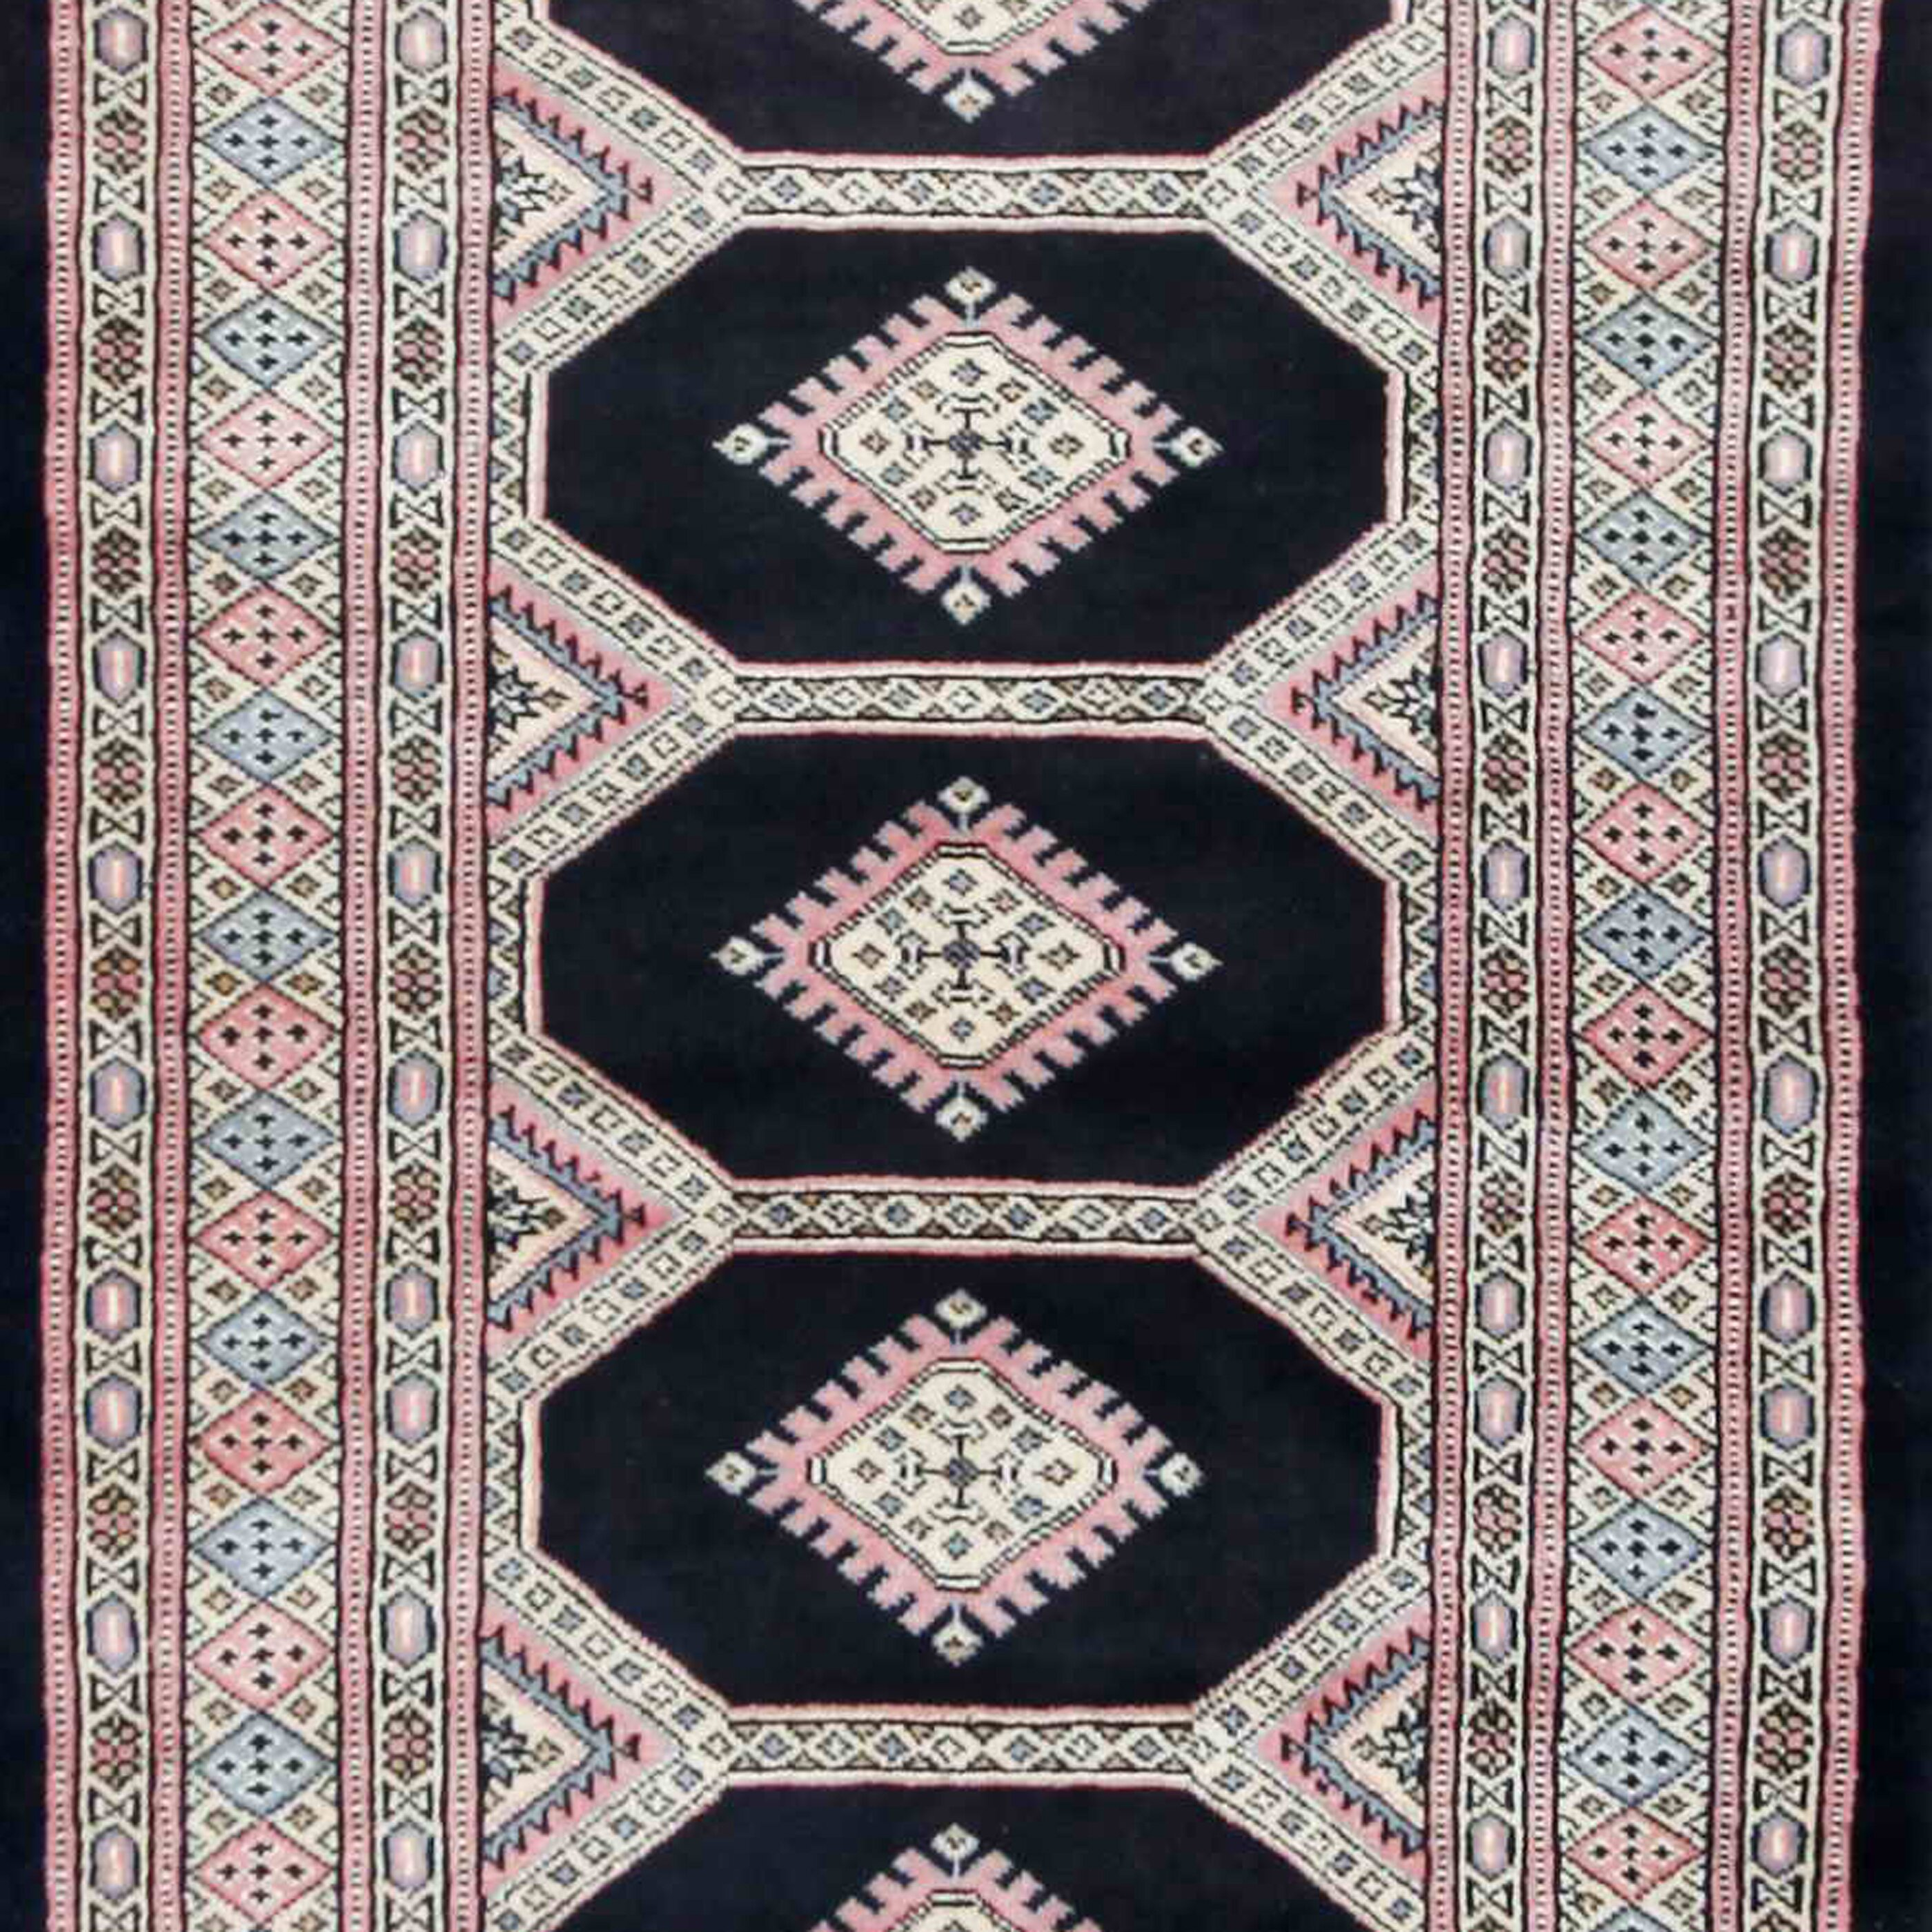 Herat Oriental Hand Tufted Wool Red Black Area Rug: Herat Oriental Tribal Bokhara Hand-Knotted Black/Pink Area